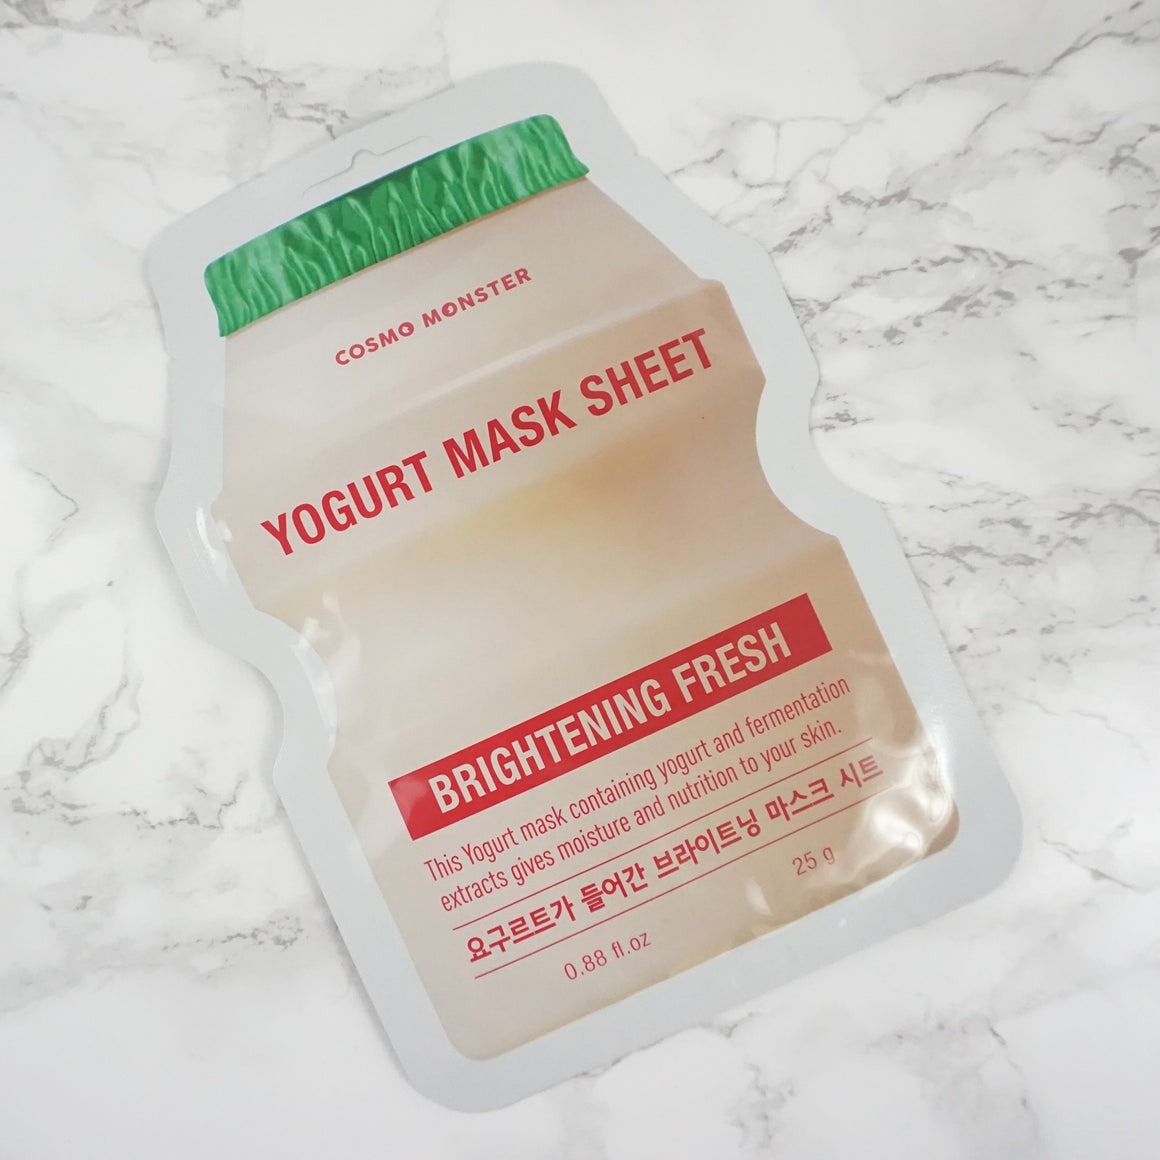 COSMO MONSTER Yogurt Mask Sheet - Brightening Fresh